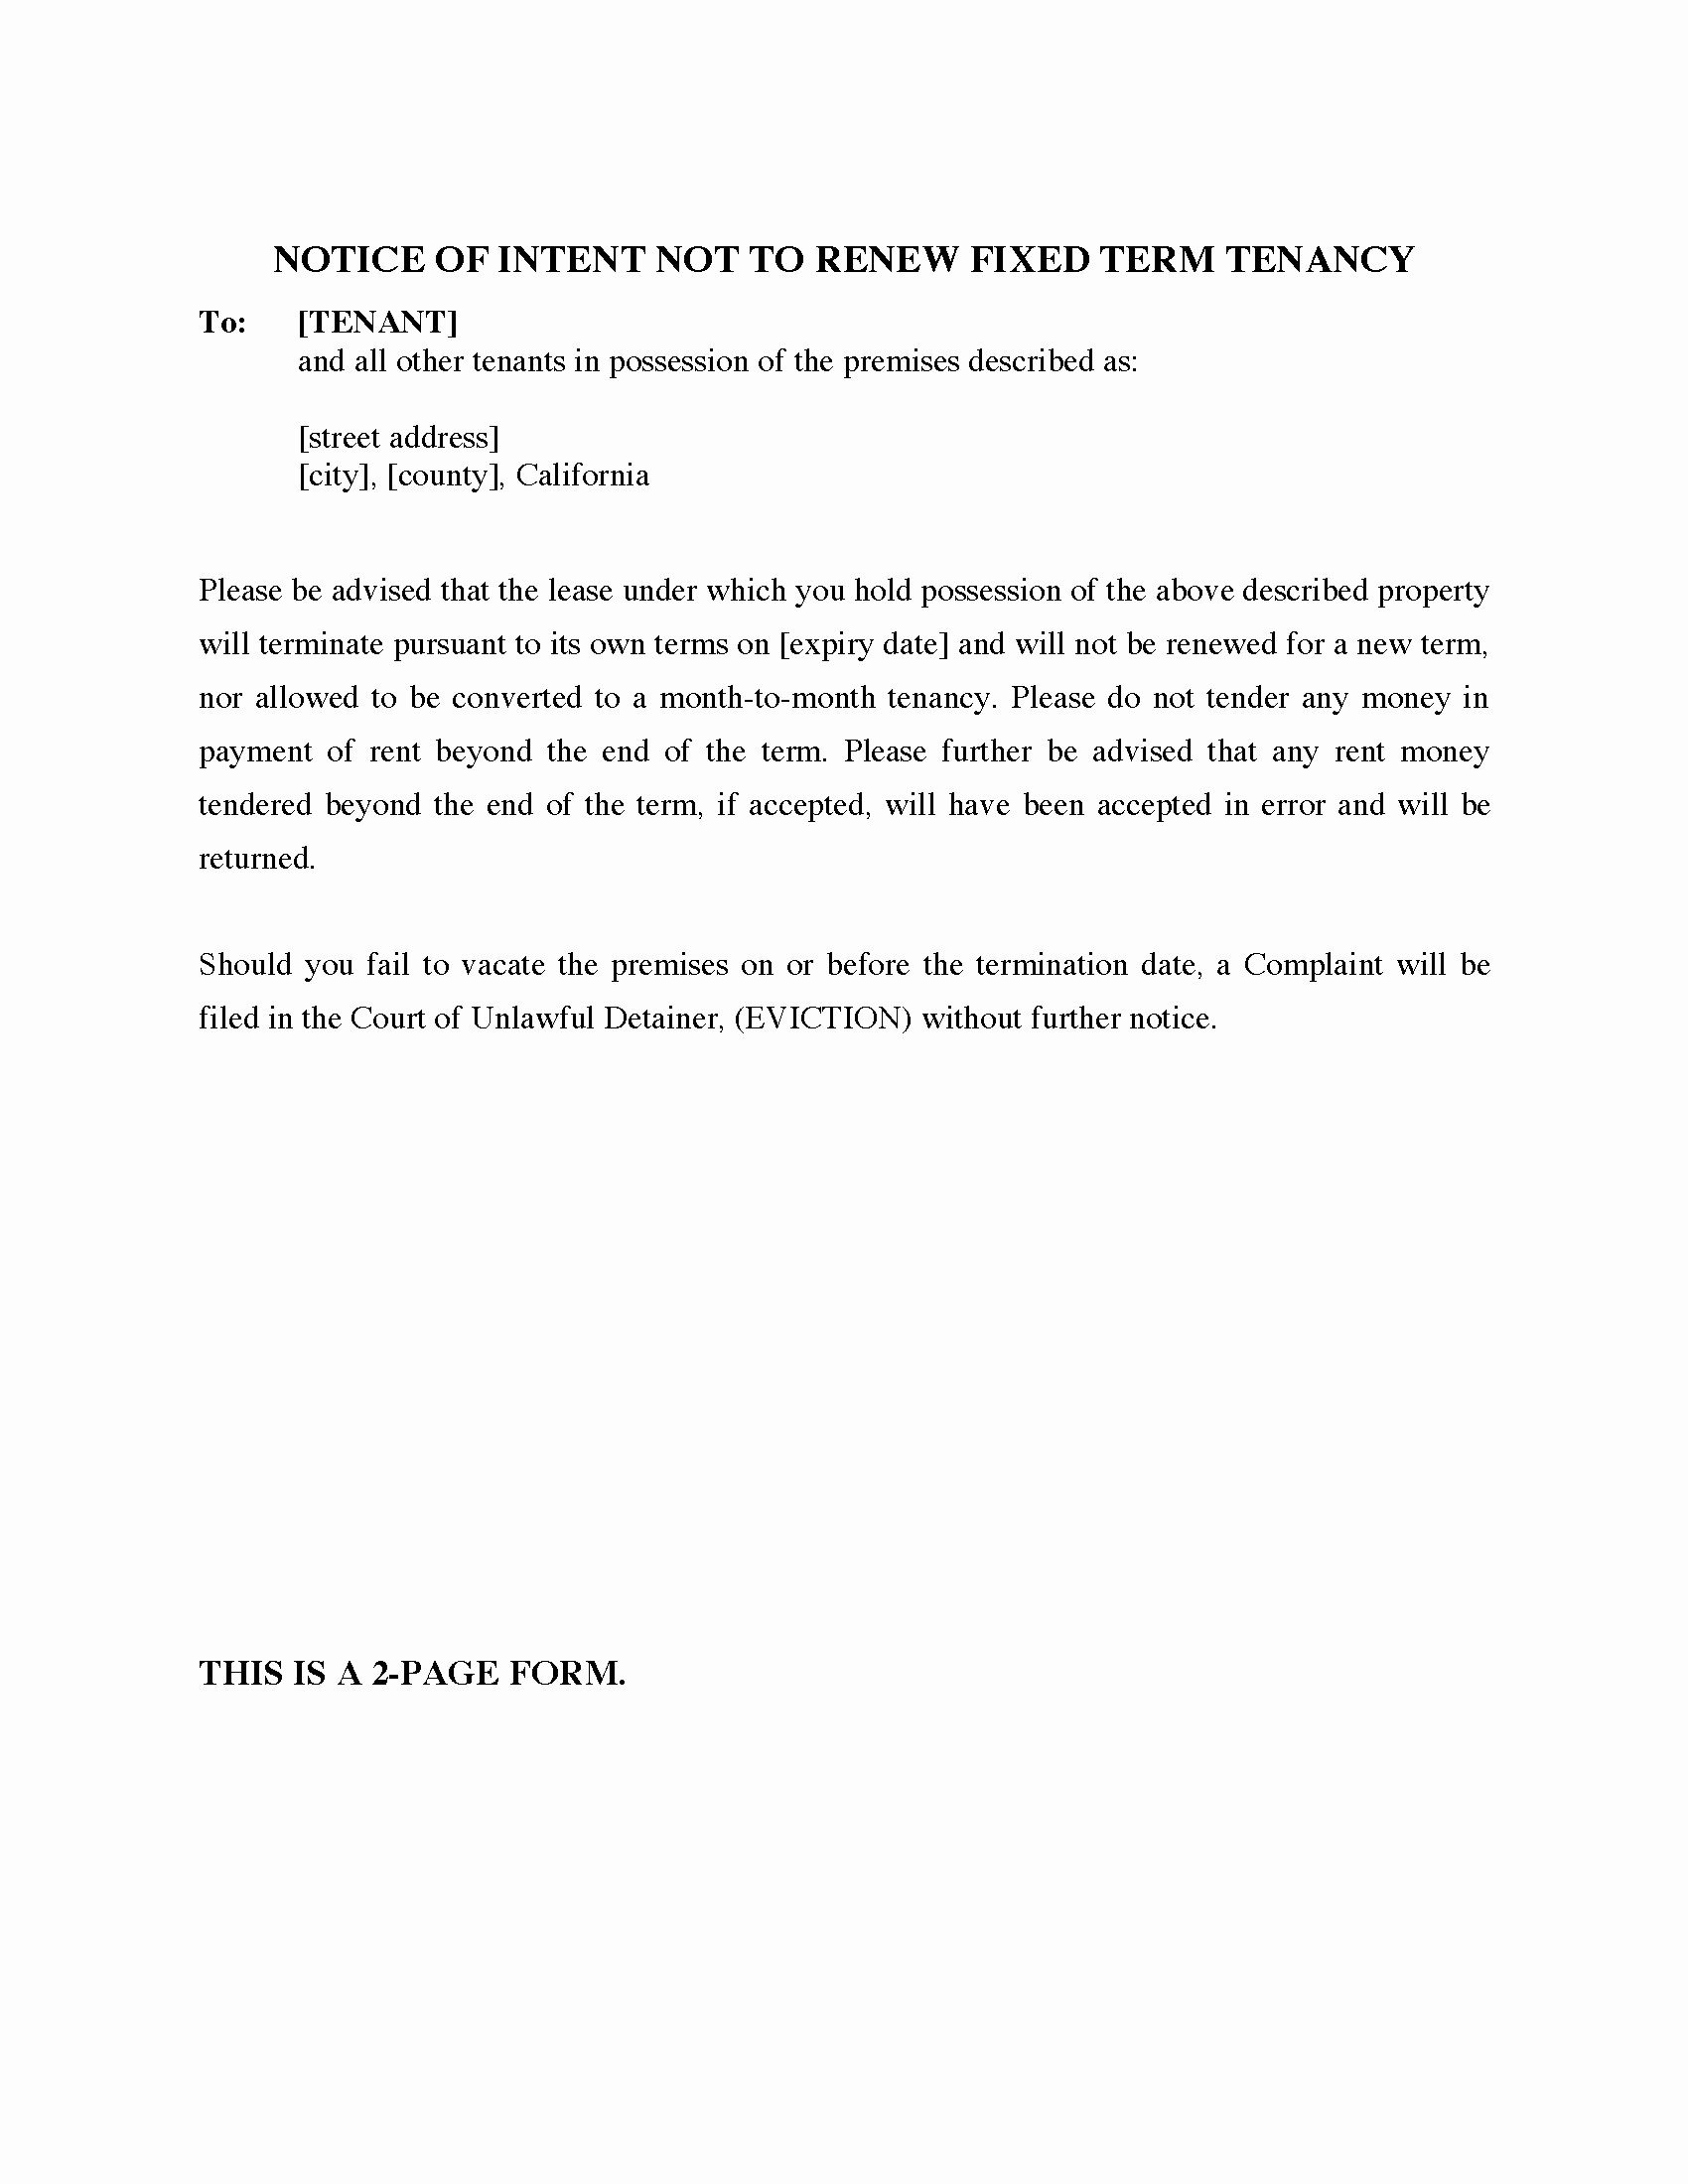 Lease Renewal Notice to Tenant Elegant Tenant Not Renewing Lease Letter